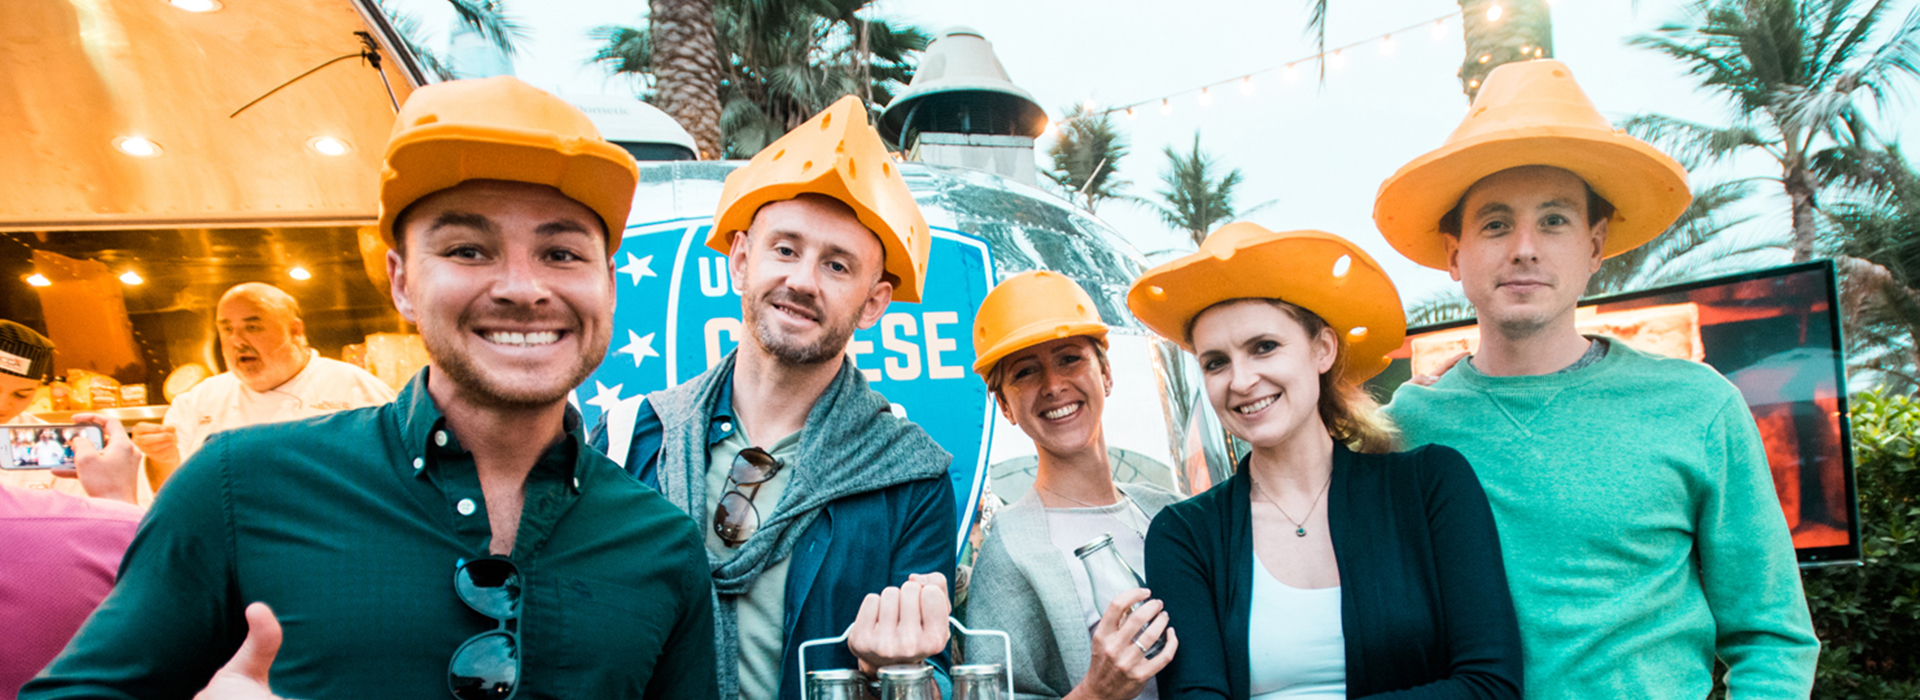 Participants with cheese hats